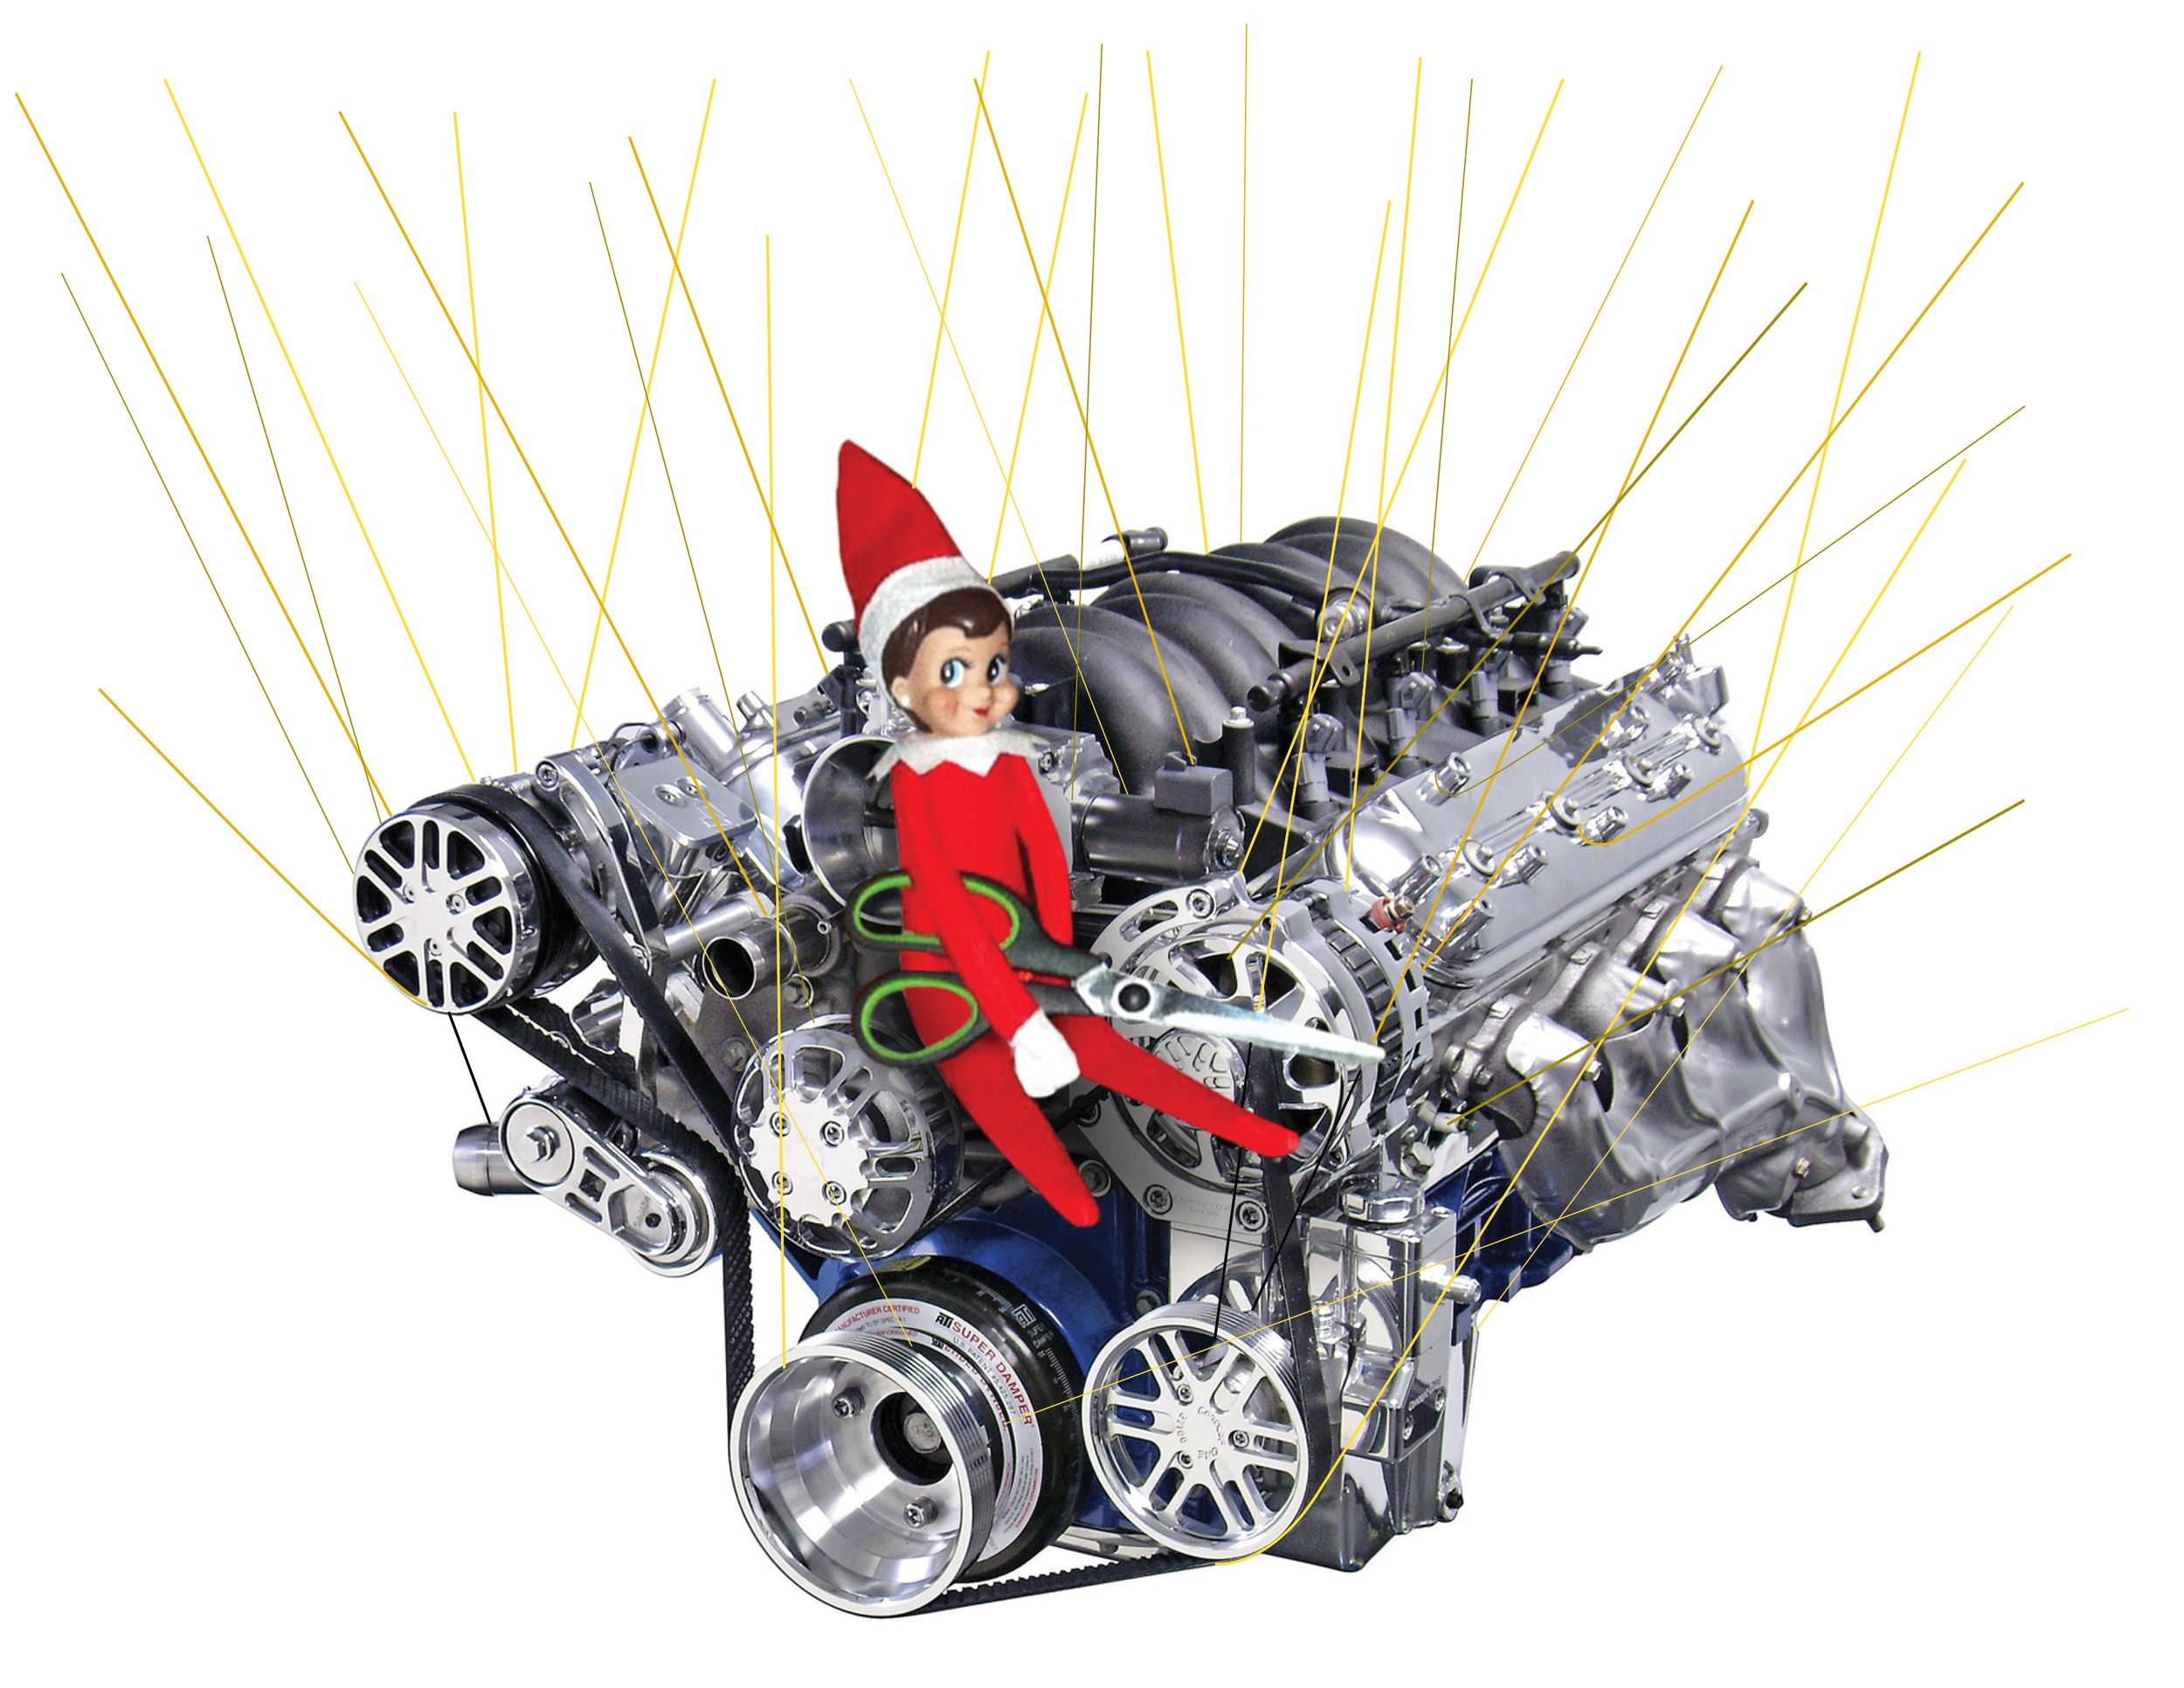 Elf on an engine block2.jpg